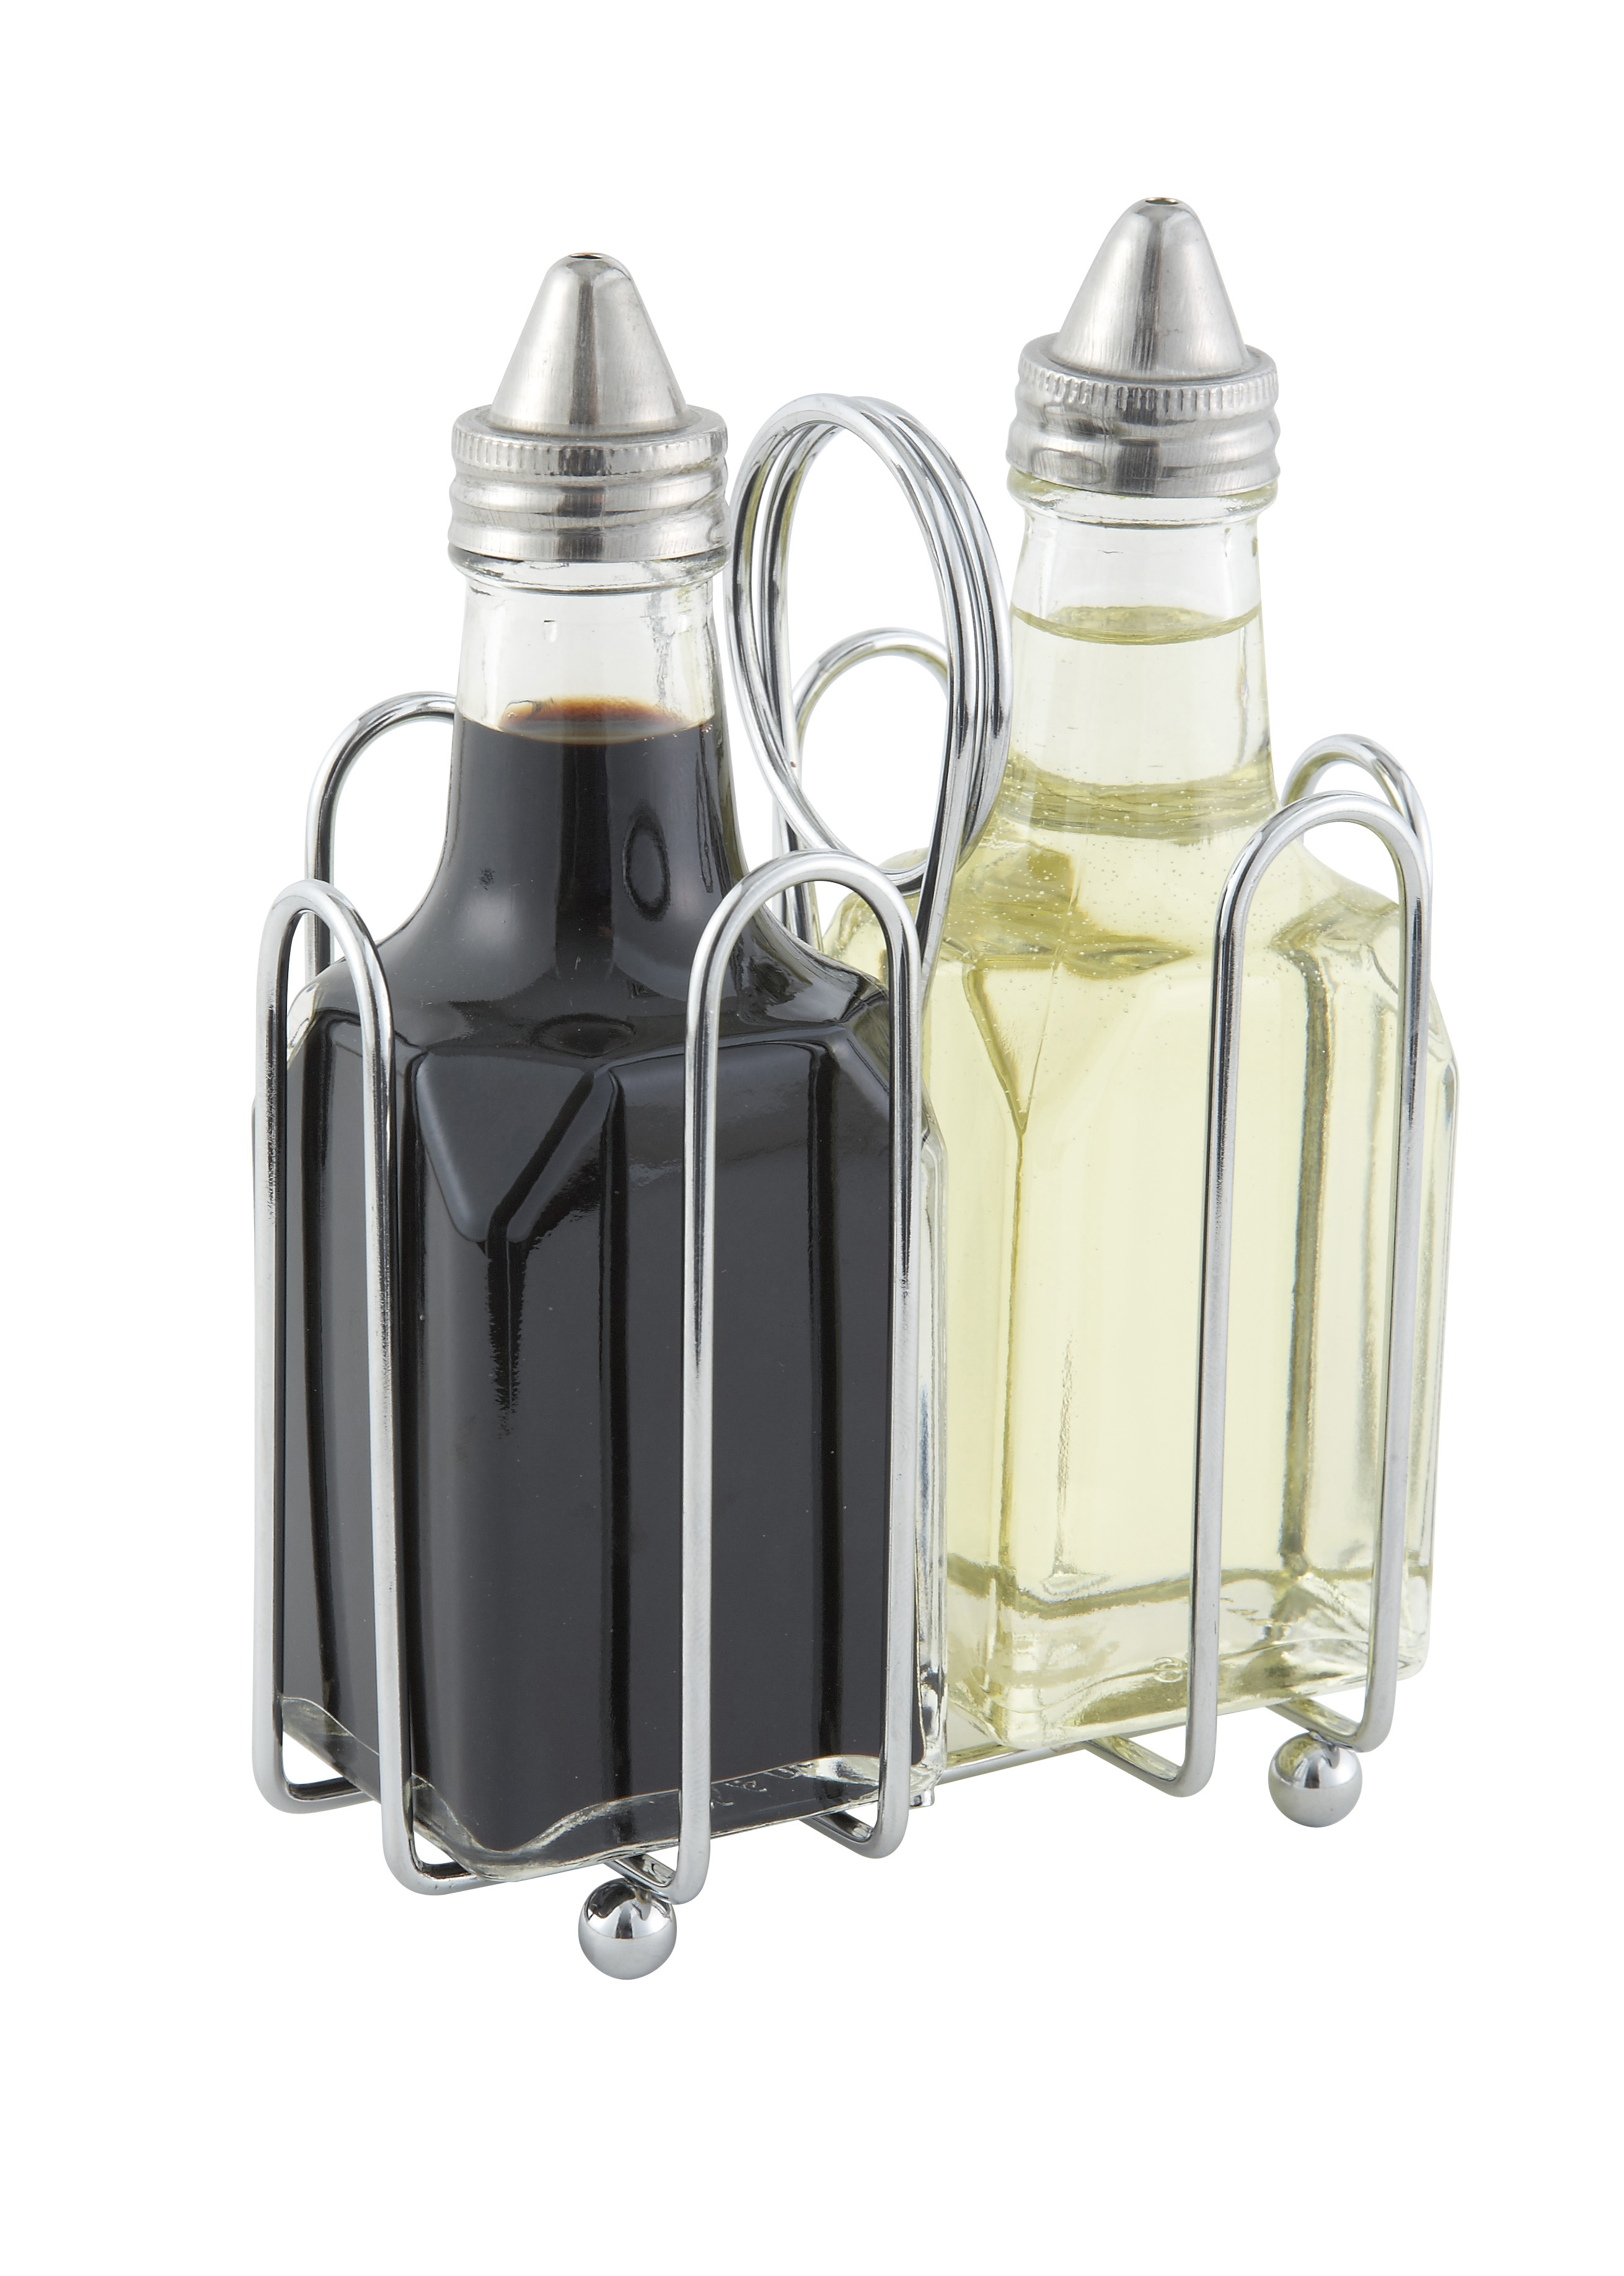 Chrome Plated Condiment Holder U2013 Tabletop: Winco